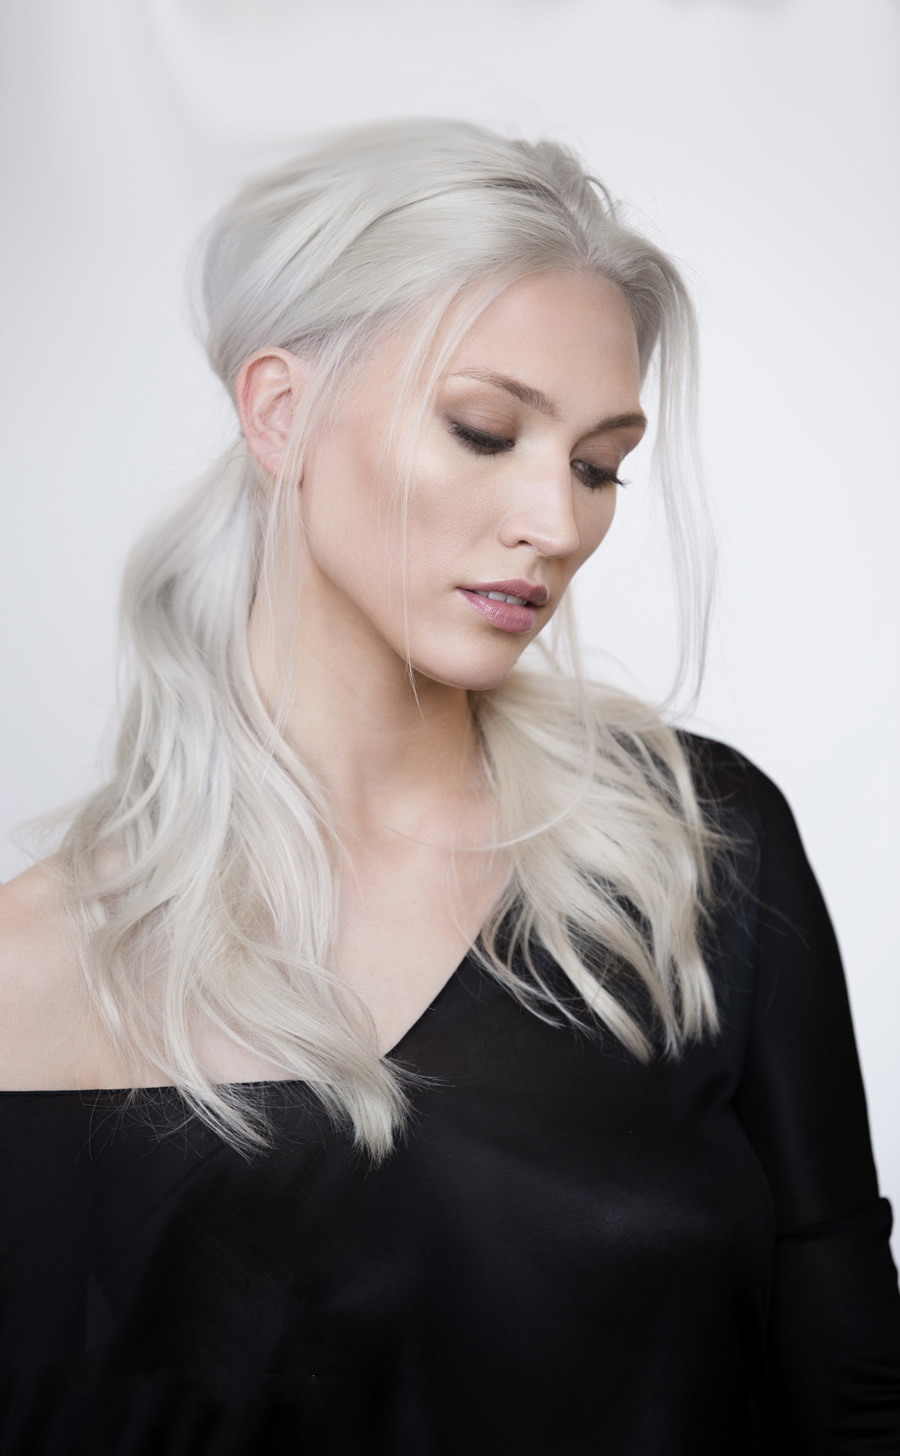 Hair Trends Spring Summer 2019 - Profiles Salon Redditch